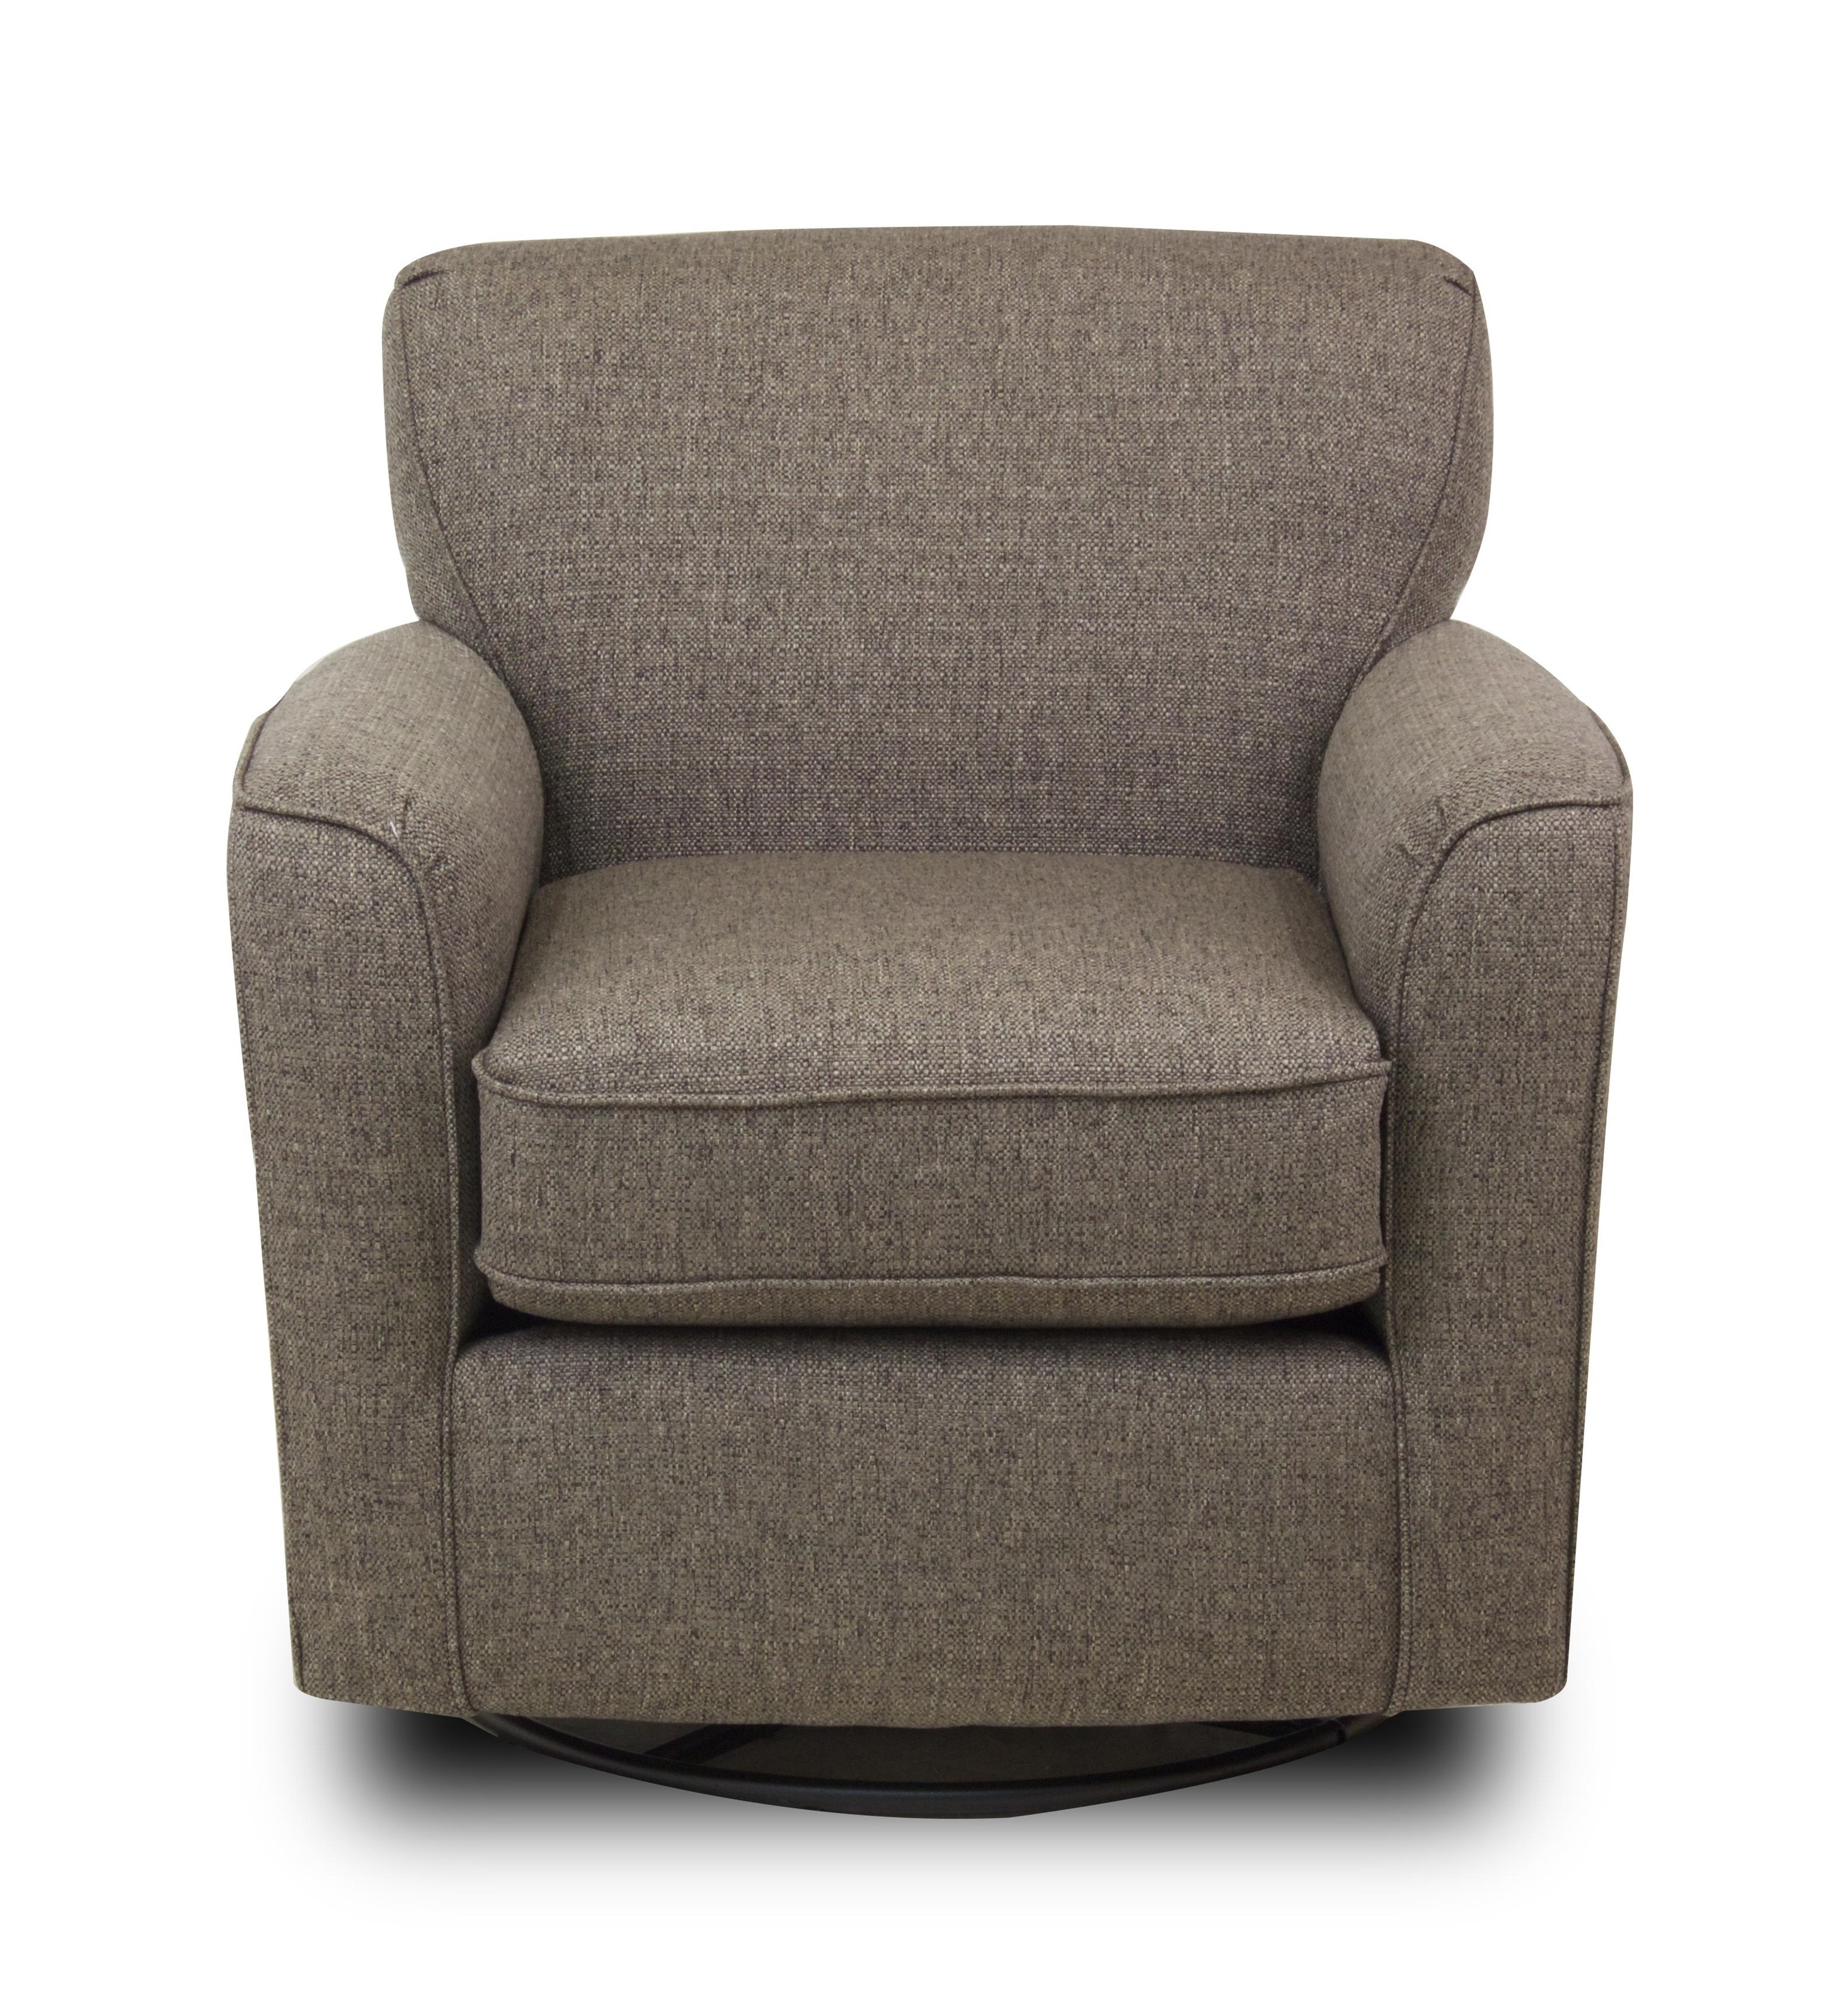 Chairs Comfortable Swivel Glide Chairs Kaylee Swivel Barrel Arm Chair By Best Home Furnishings At Ruby Gordon Home